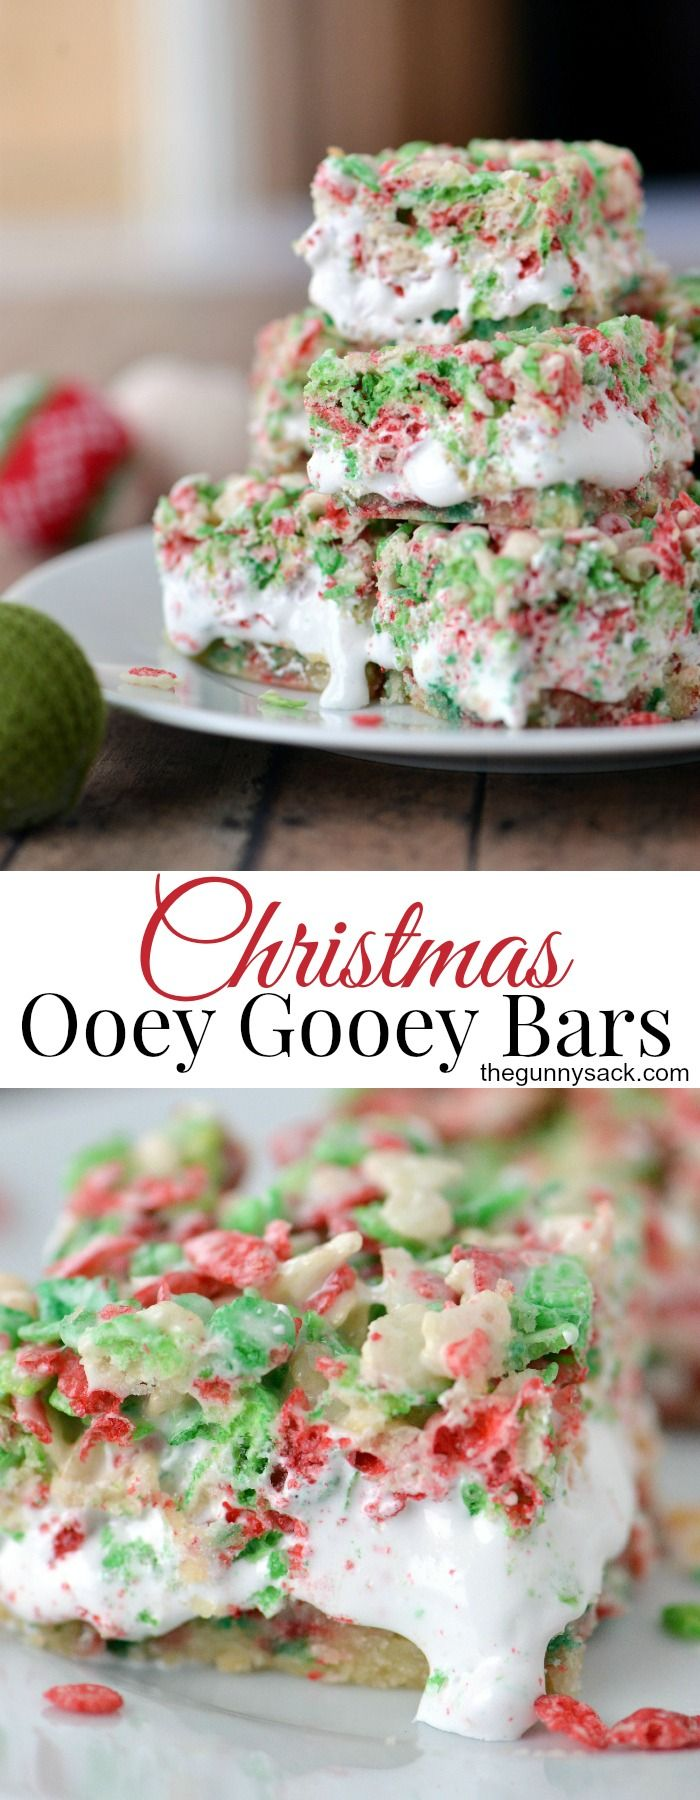 Christmas Ooey Gooey Bars are the BEST holiday version of Rice Krispies Treats.